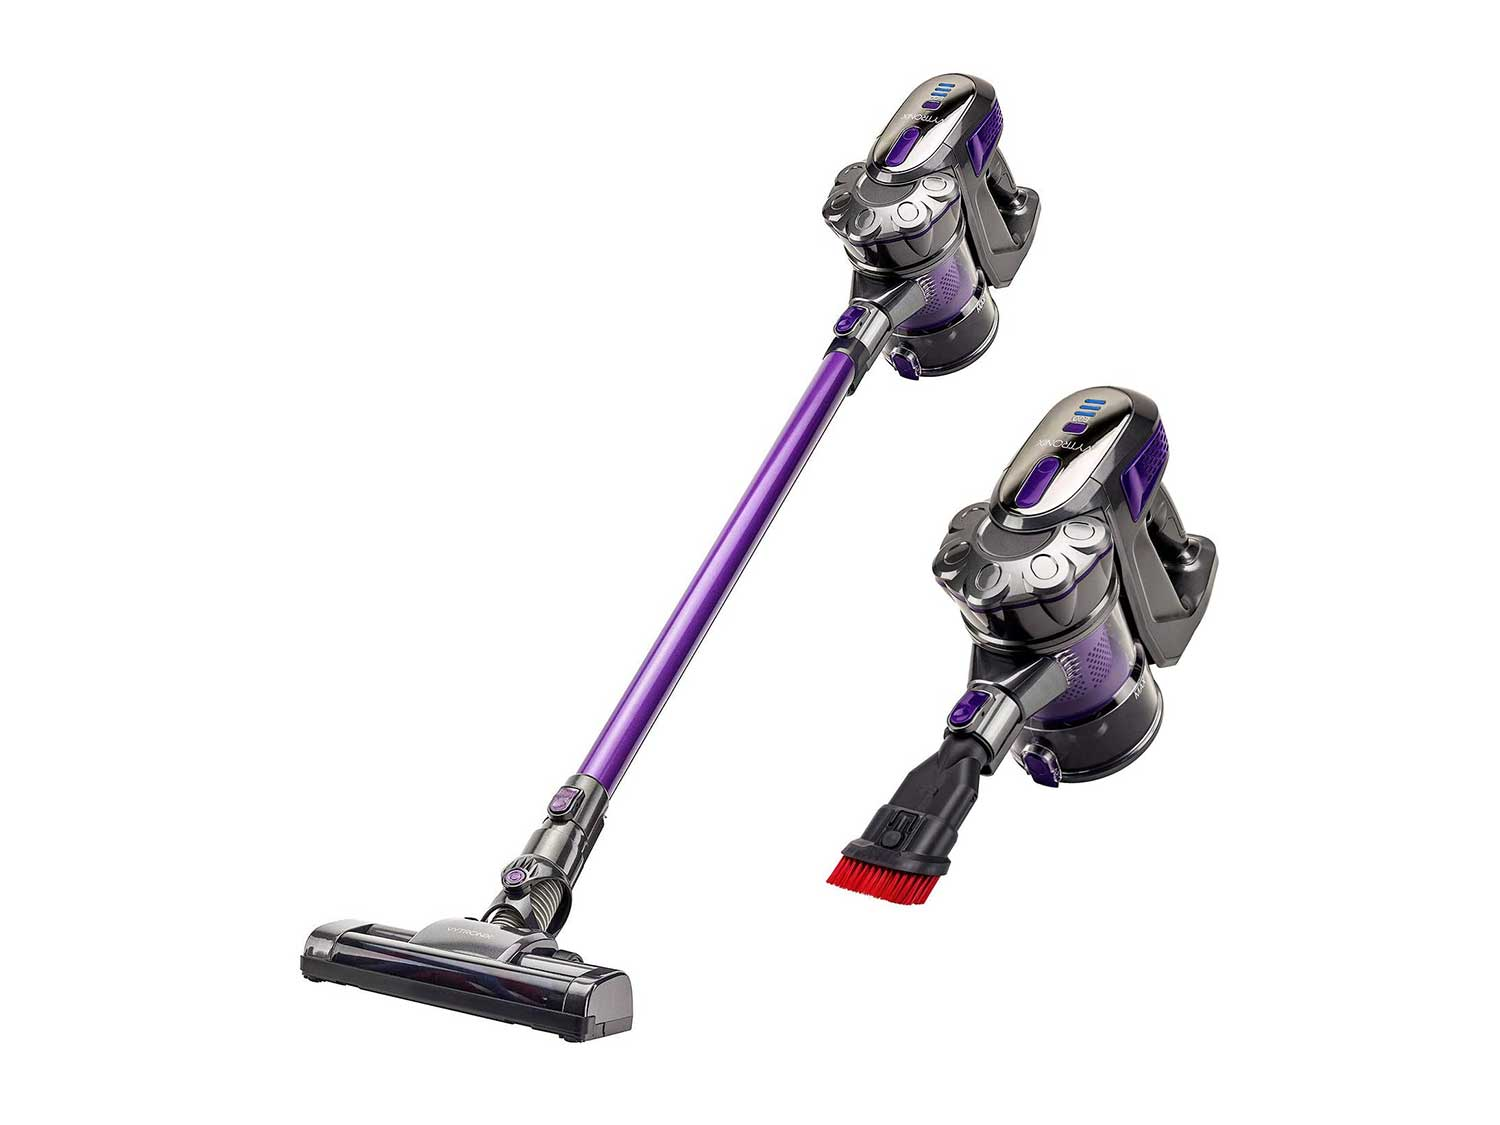 VYTRONIX NIBC22 22.2v Lightweight Lithium 3 in 1 Cordless Upright Handheld Stick Vacuum Cleaner